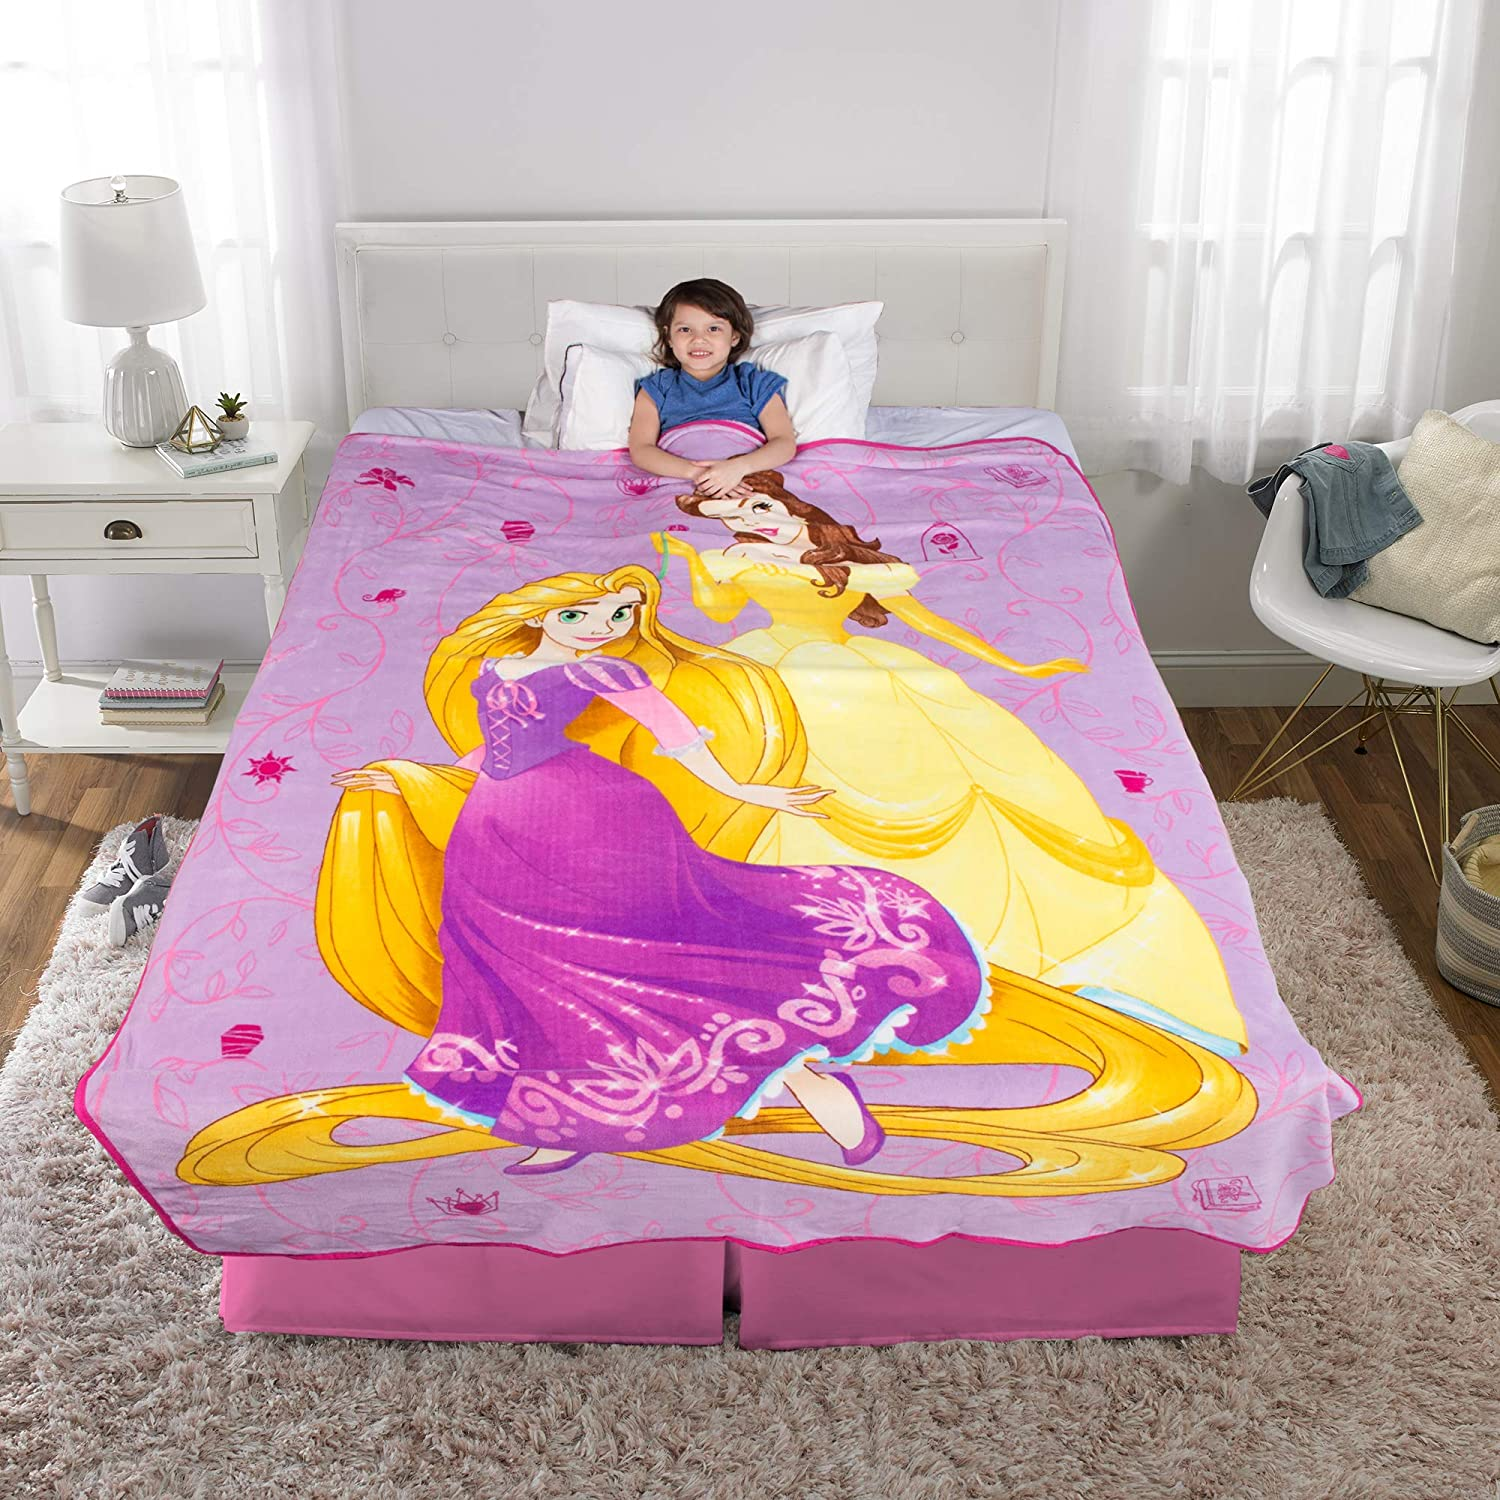 "Franco Kids Bedding Super Soft Plush Microfiber Blanket, Twin/Full Size 62"" x 90"", Disney Princess"